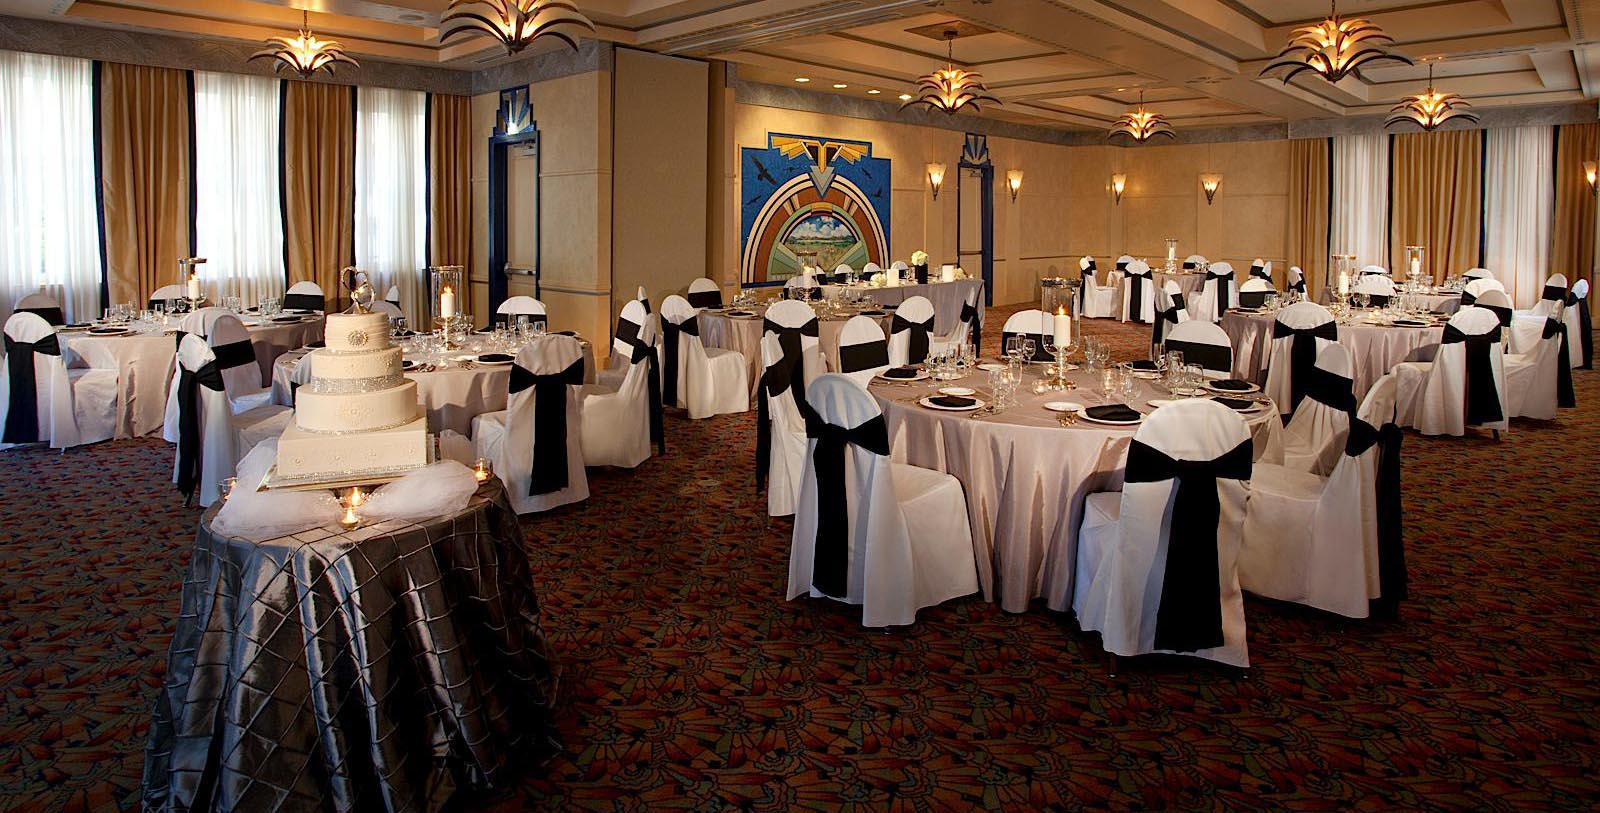 Image of meeting and event space set up for banquet Hassayampa Inn, 1927, Member of Historic Hotels of America, in Prescott, Arizona, Experience